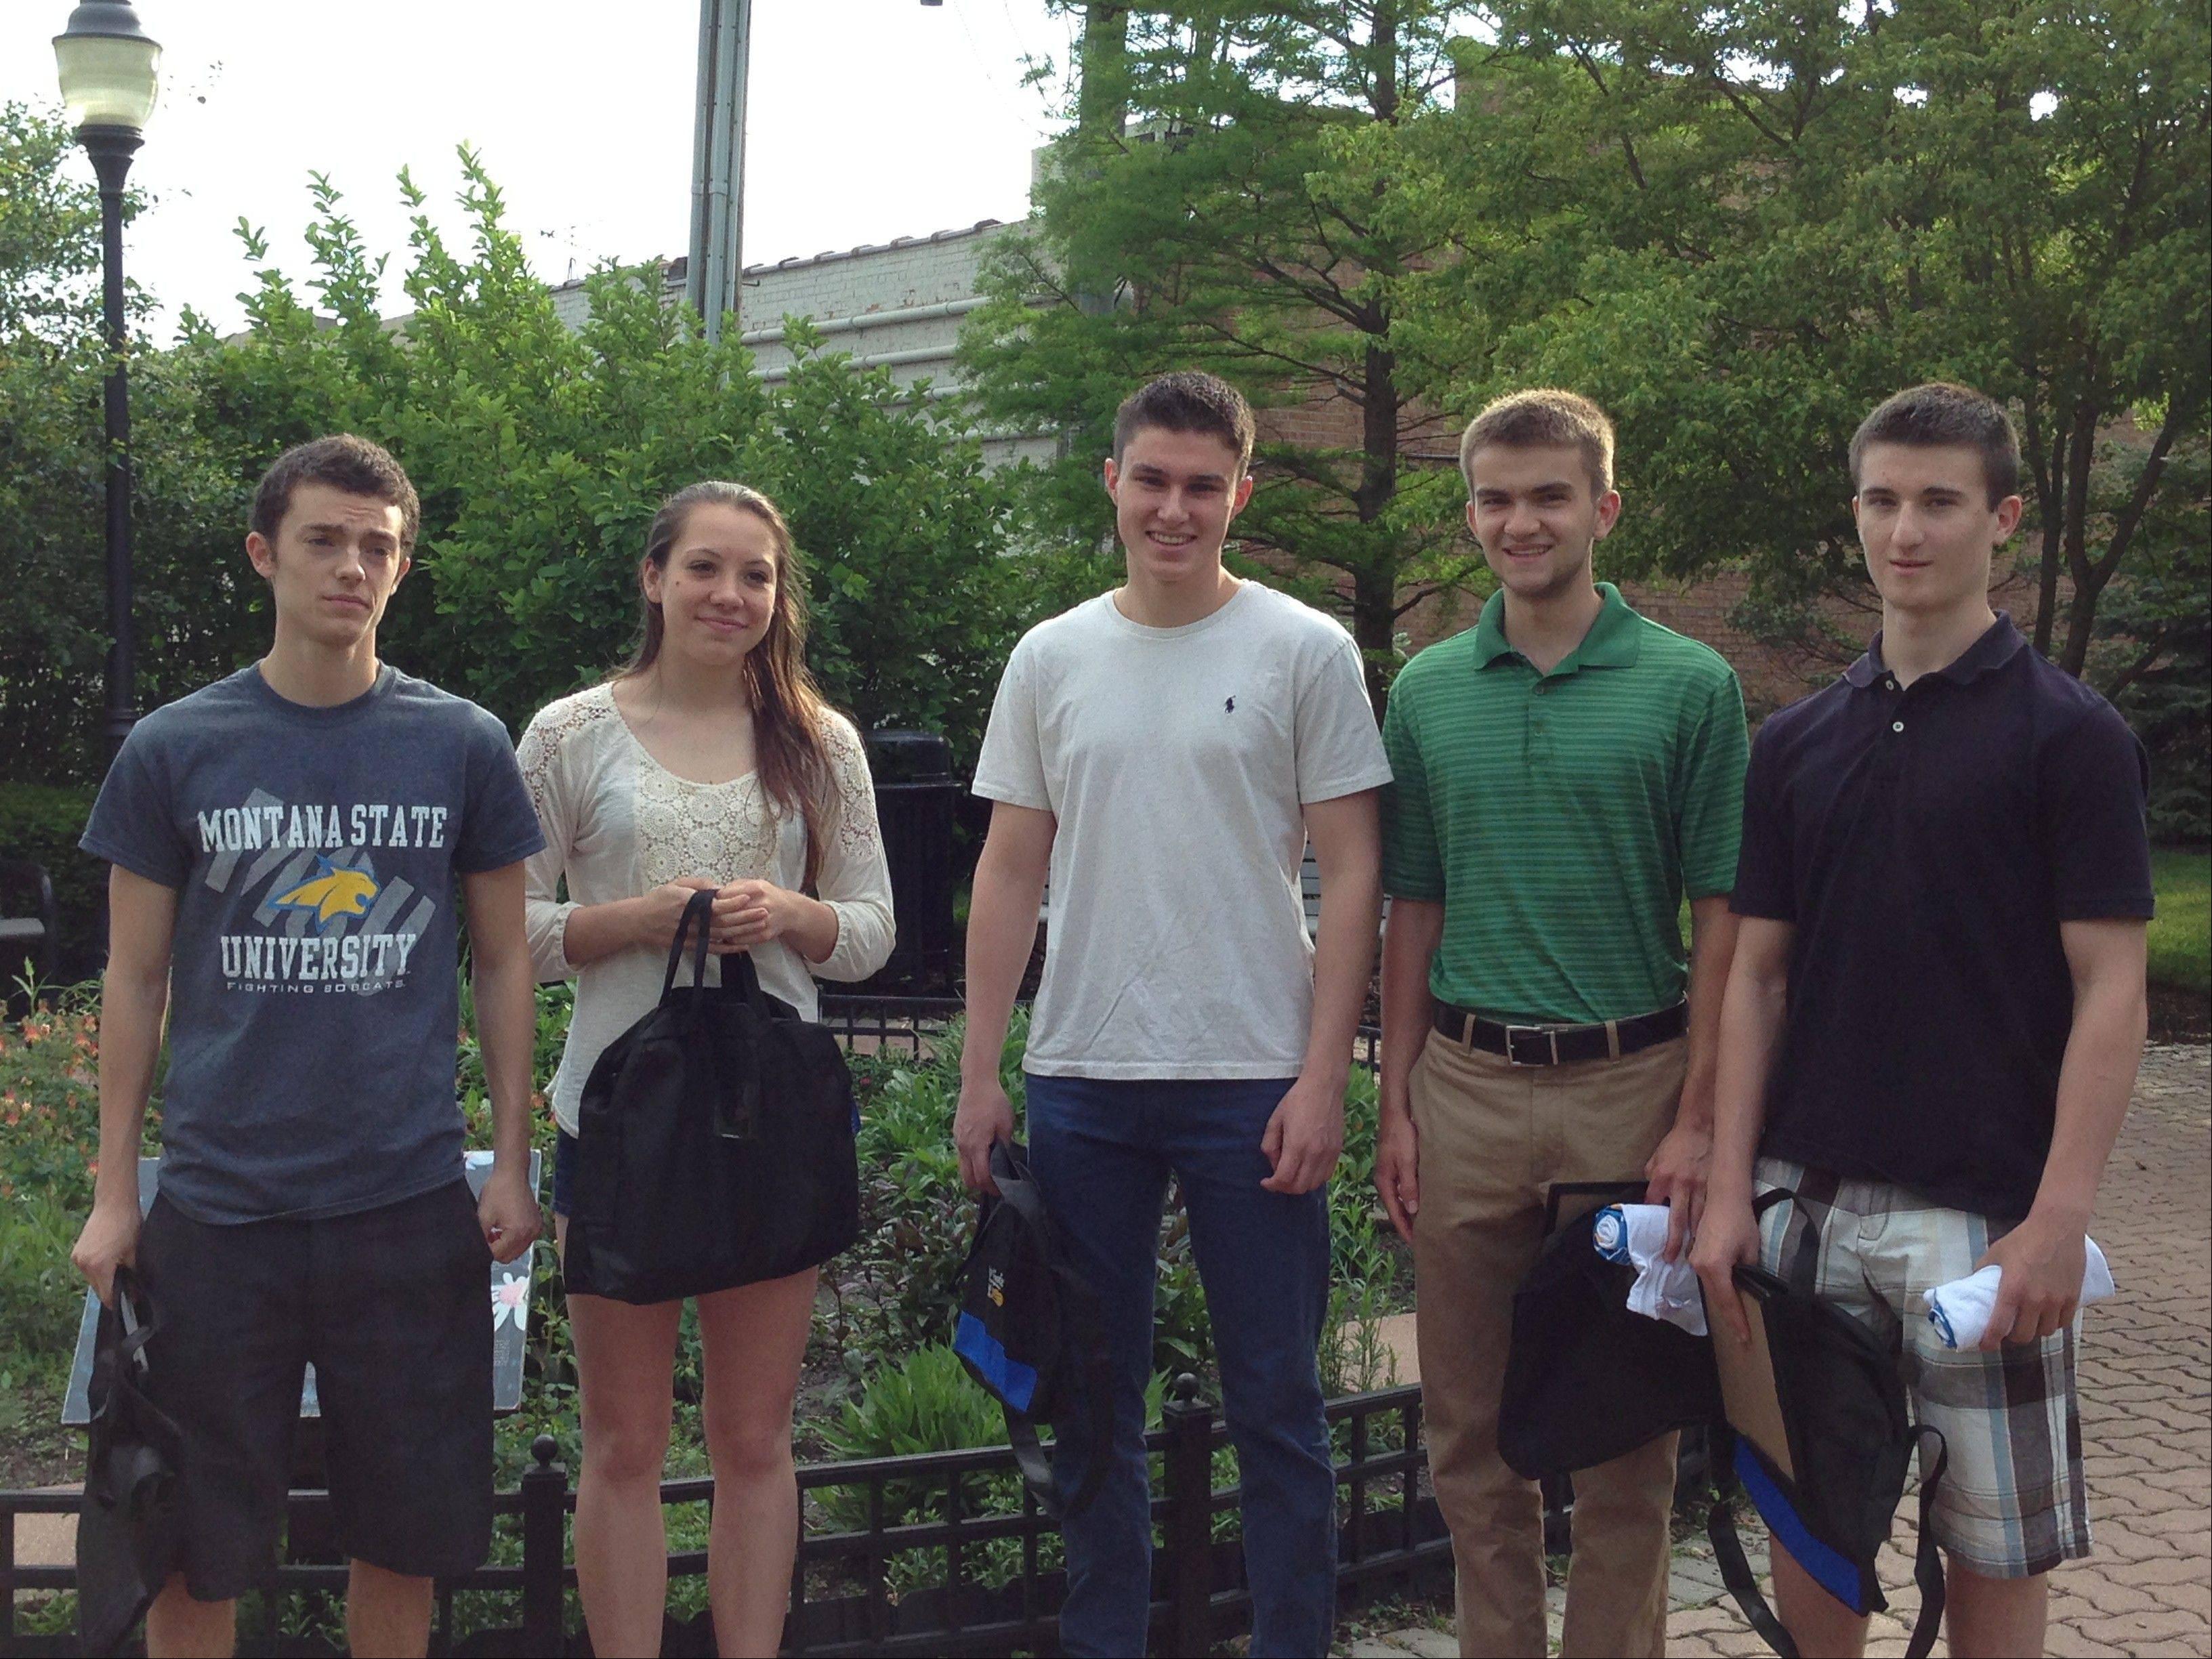 The following students make up the Prospect High School YEA! Class of 2013: Dan Sweet, senior, owner of Striive; Maddy Maloney, senior, owner of HomeBox; Kyle Blatt, senior, co-owner of Zzz Sock; Jeff Blethen, senior, co-owner of Zzz Sock; and Alec Buchanan, sophomore, owner of Oraie.